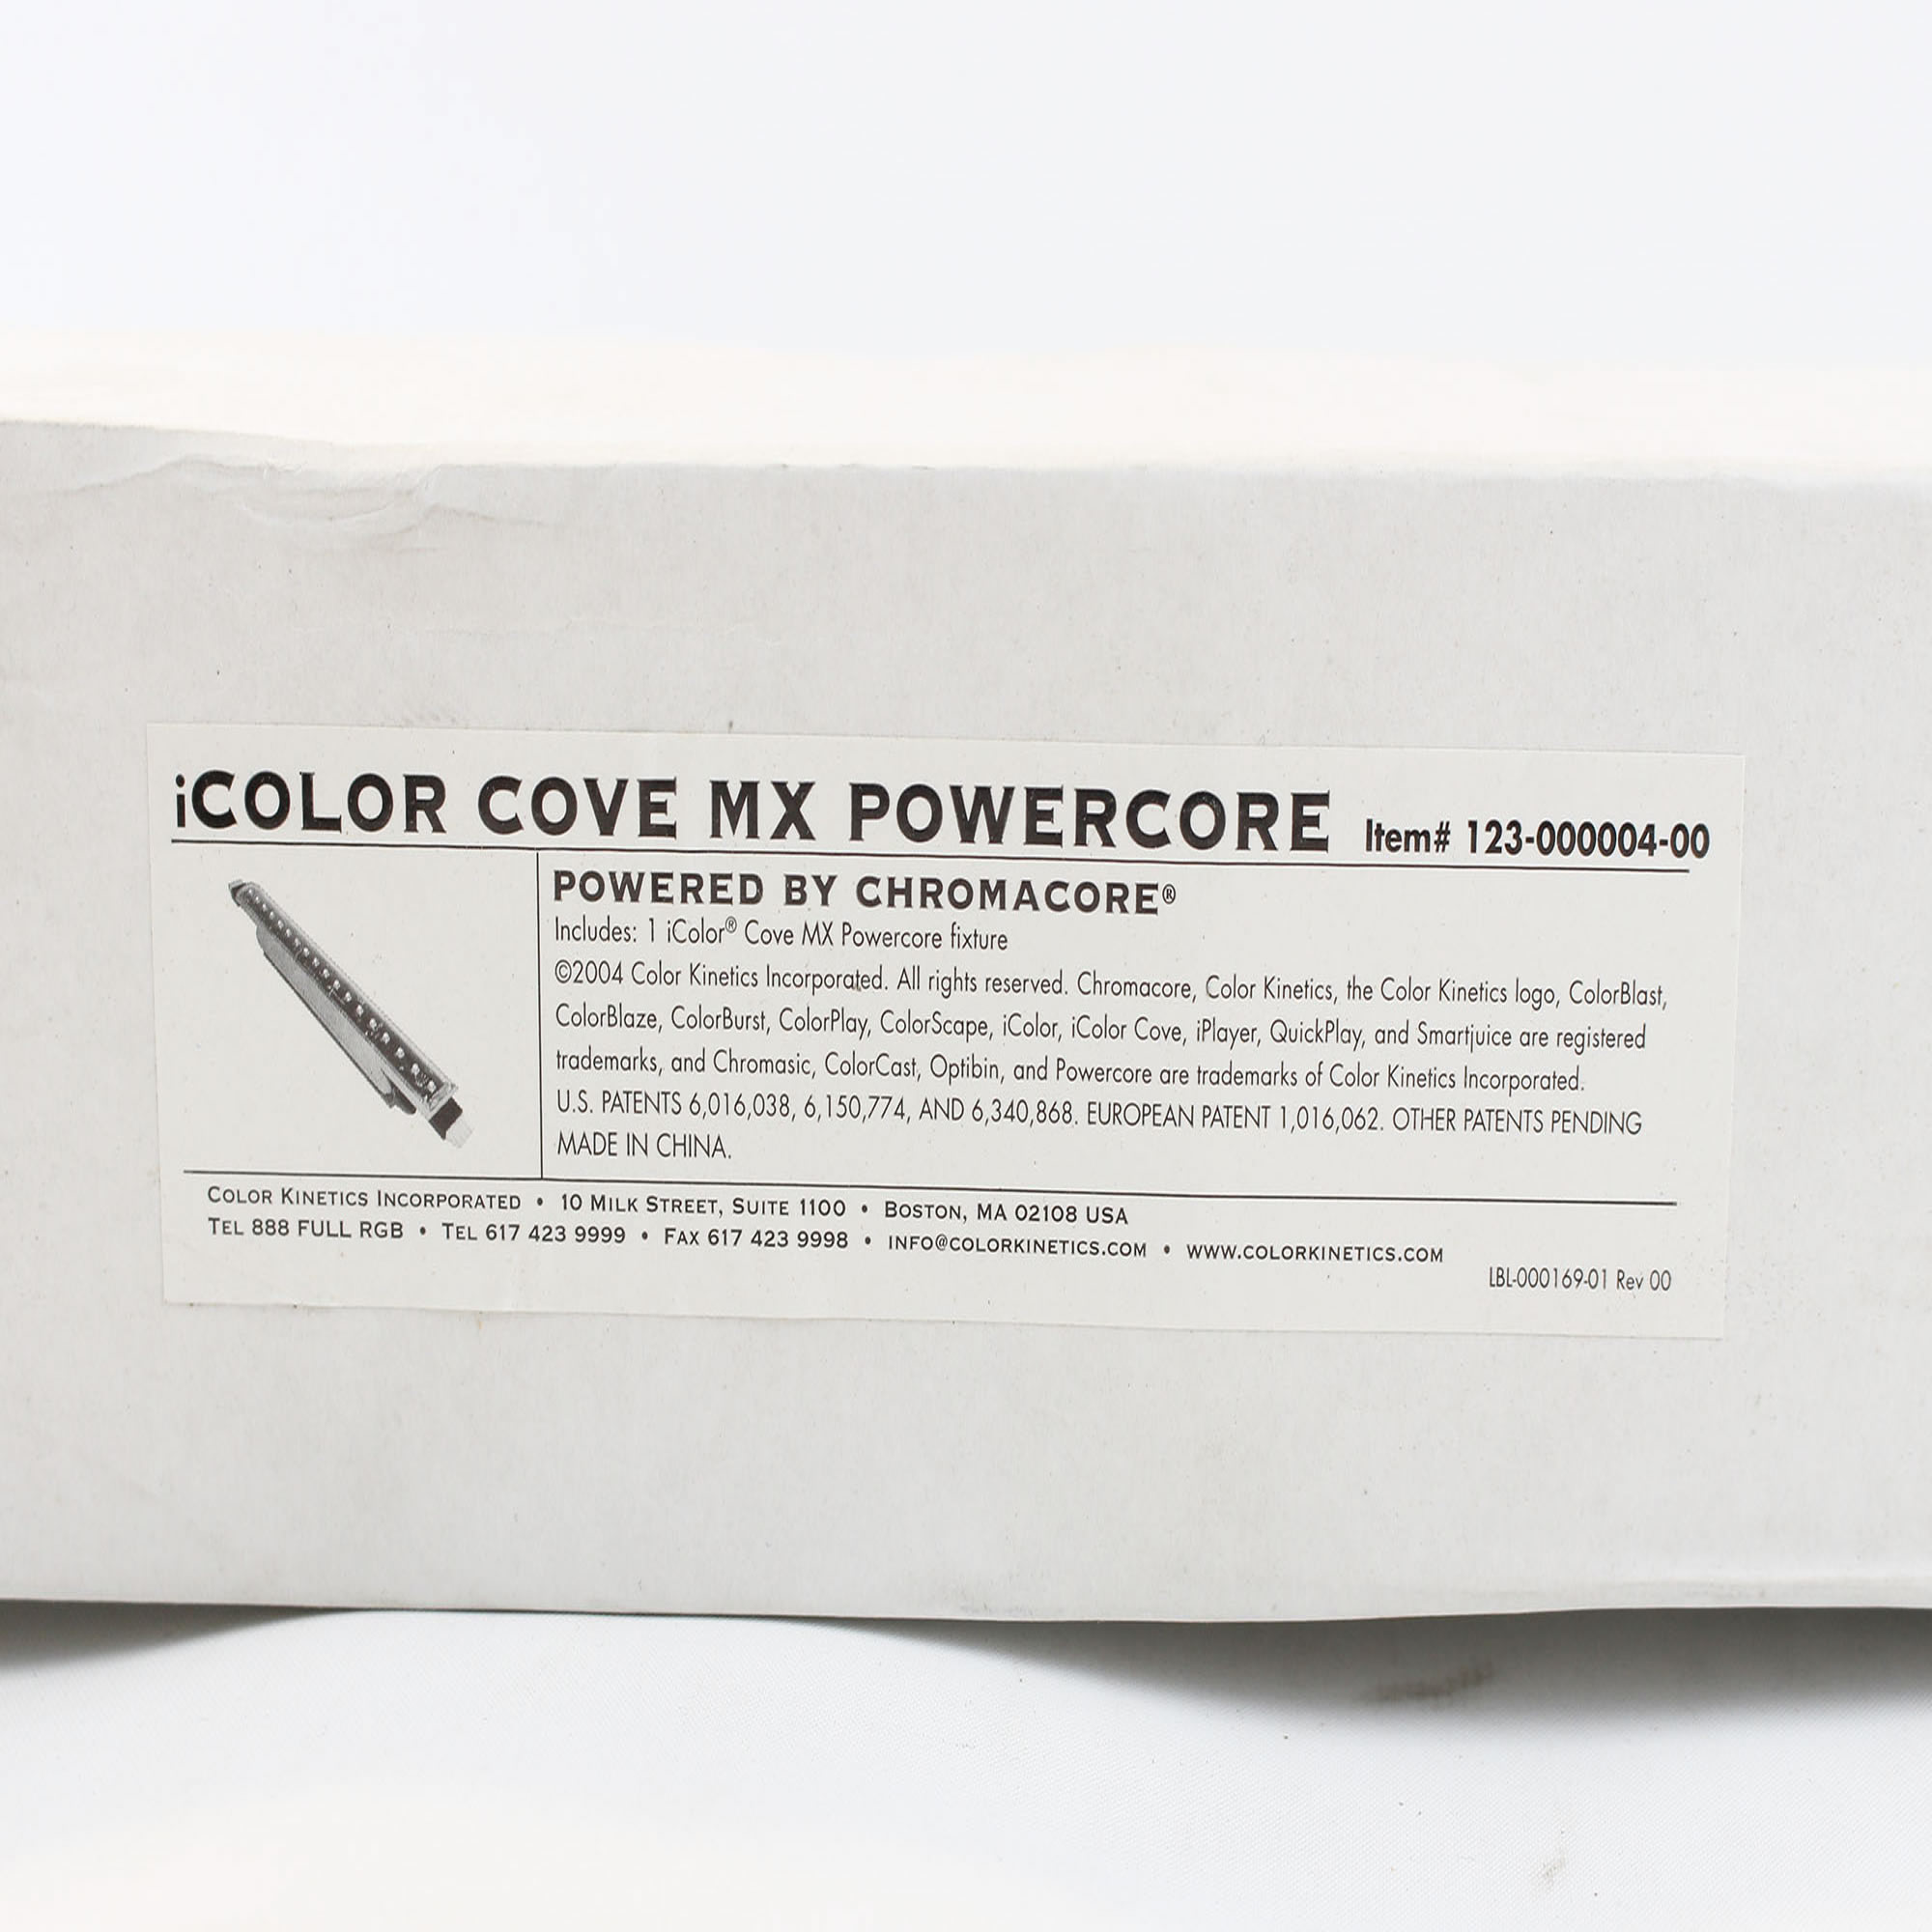 color kinetics incorporated